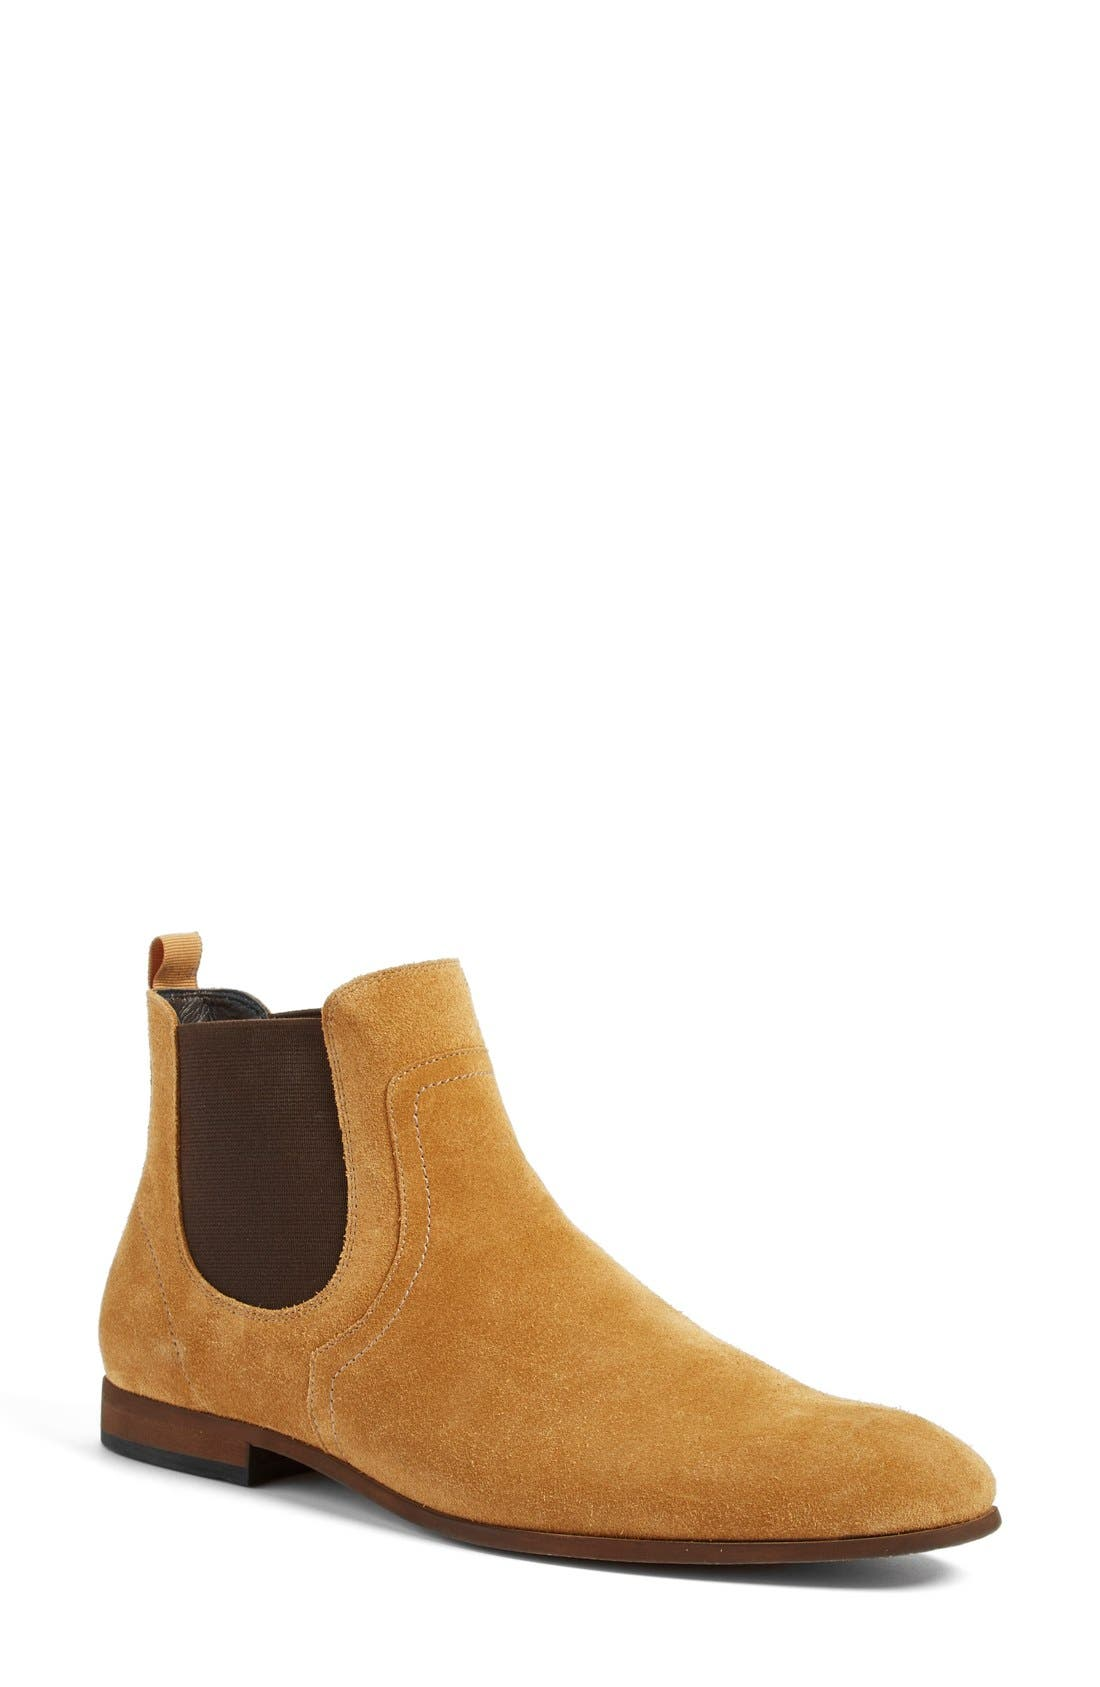 Main Image - The Rail Brysen Chelsea Boot (Men)